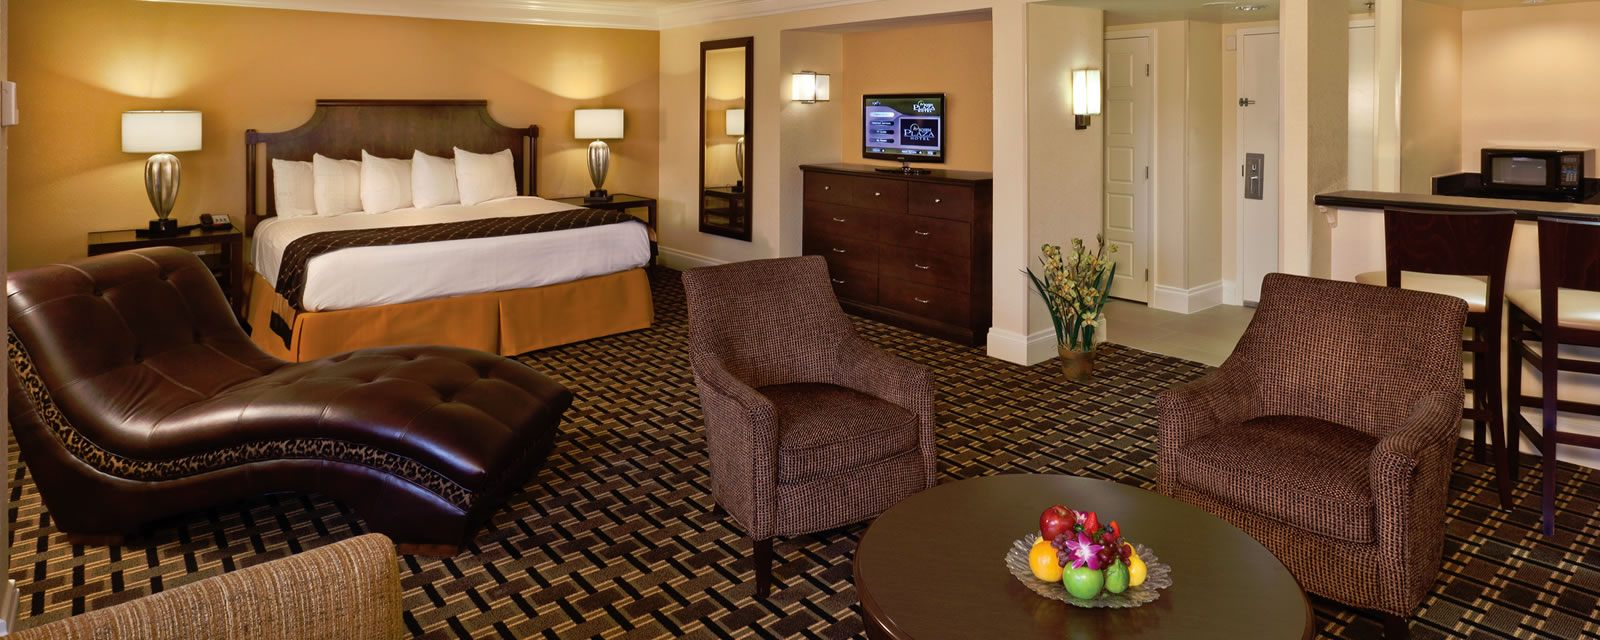 Junior Suites with bed, chairs, tvs, and table with fruit